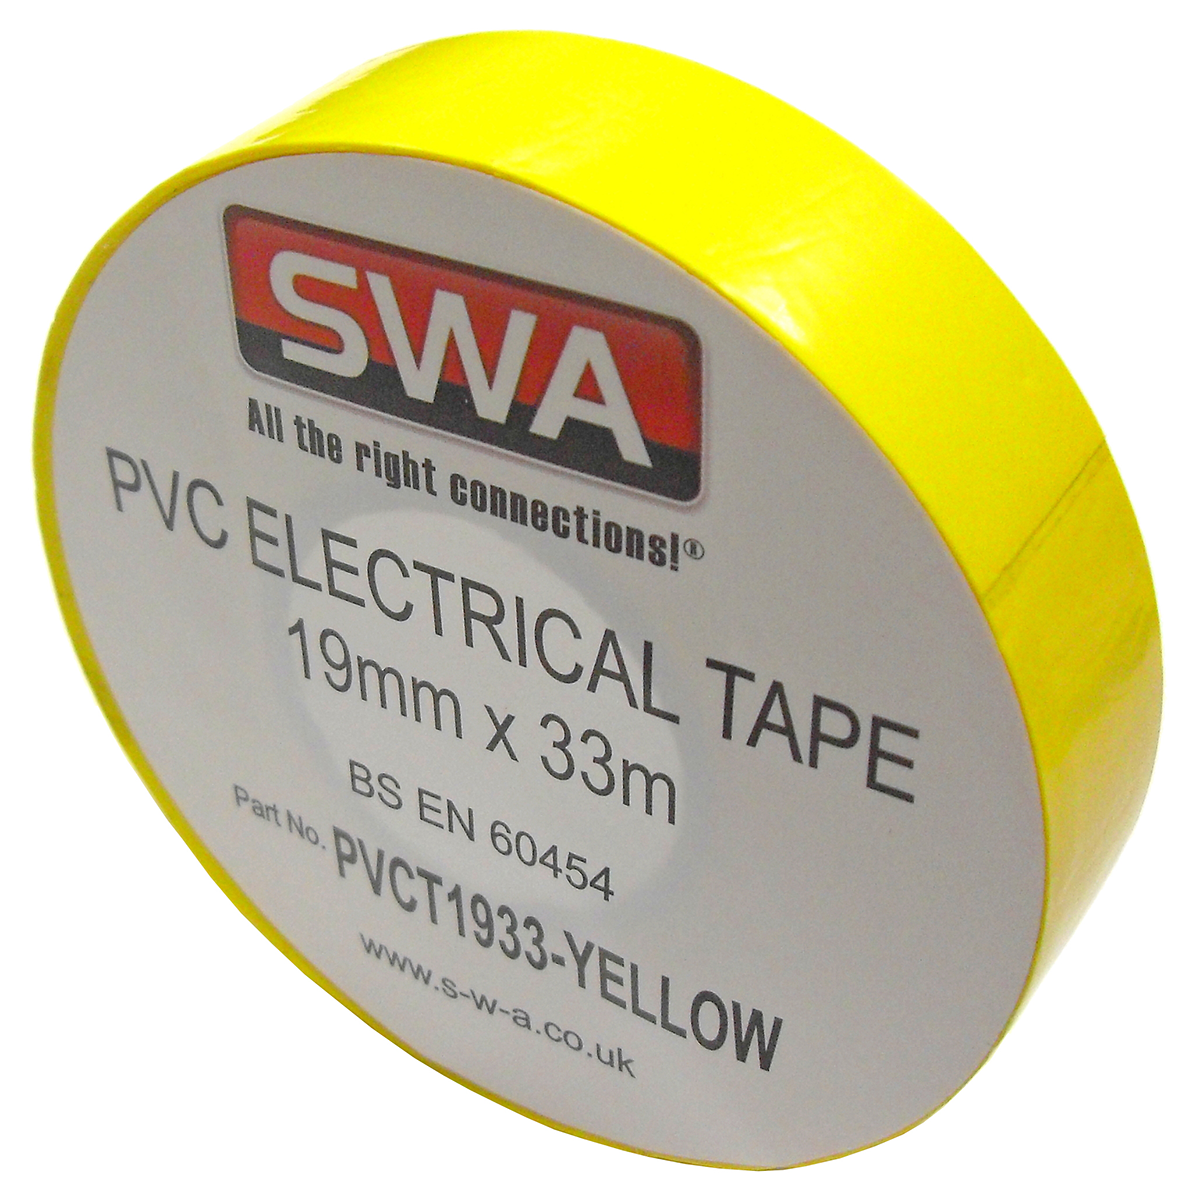 SWA PVCT1933-Y Electrical Tape Yel